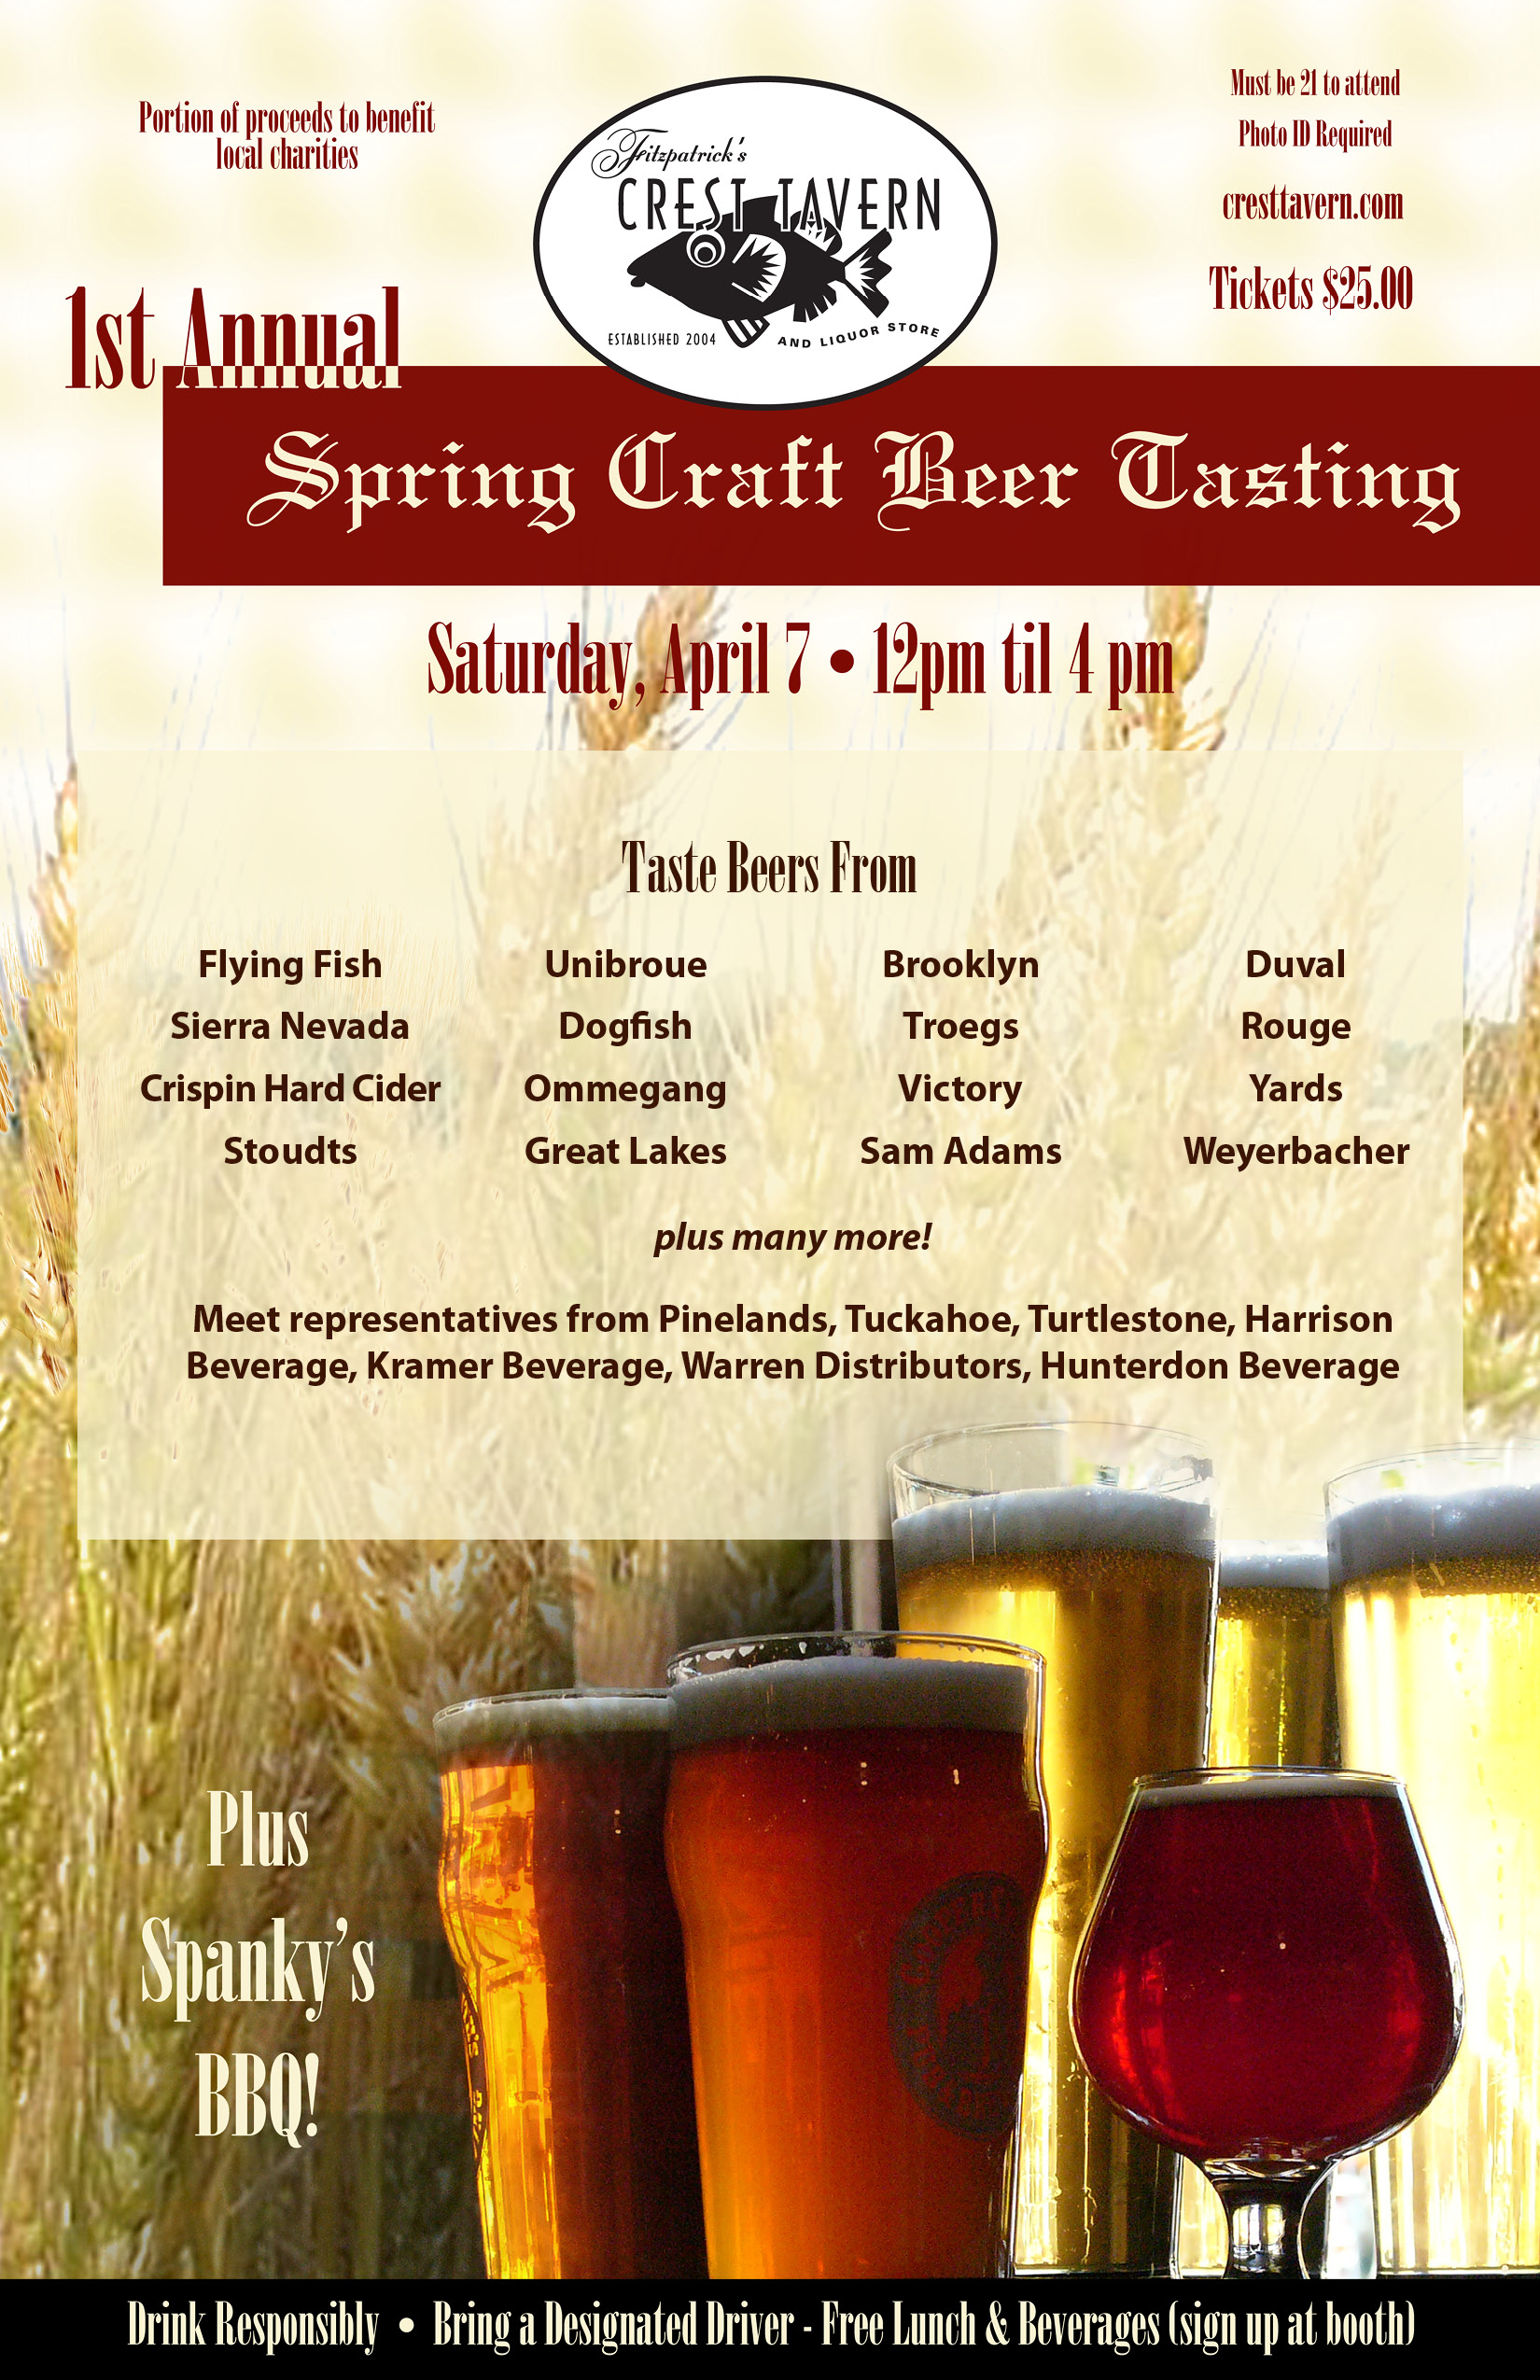 1st Annual Spring Craft Beer Tasting